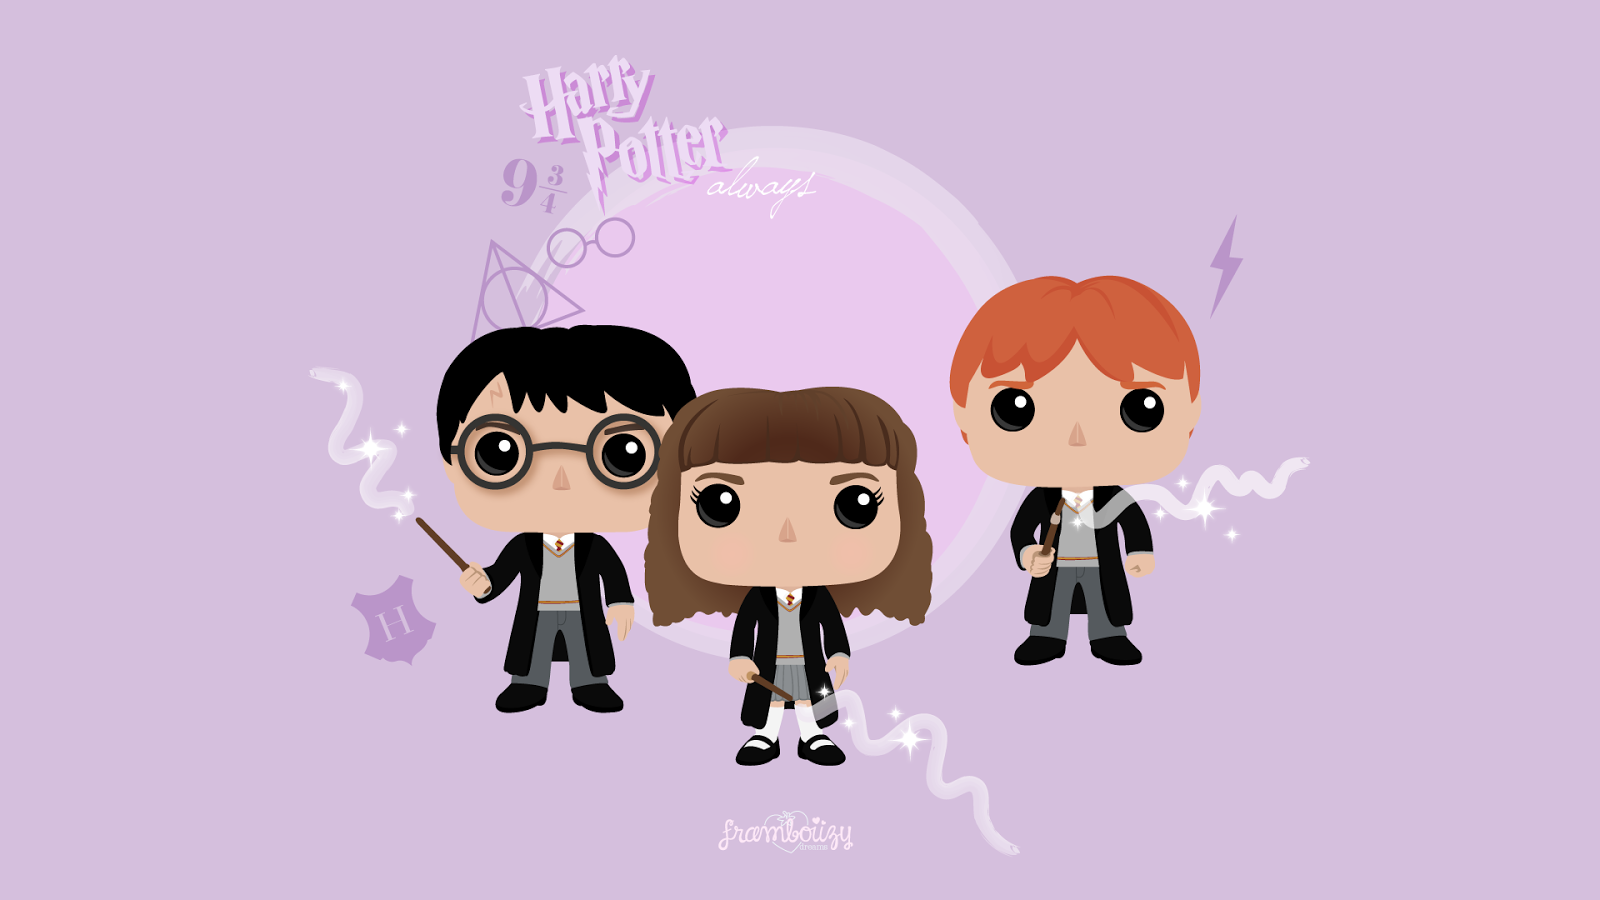 Wallpaper 11 Pop Harry Potter Framboiizy